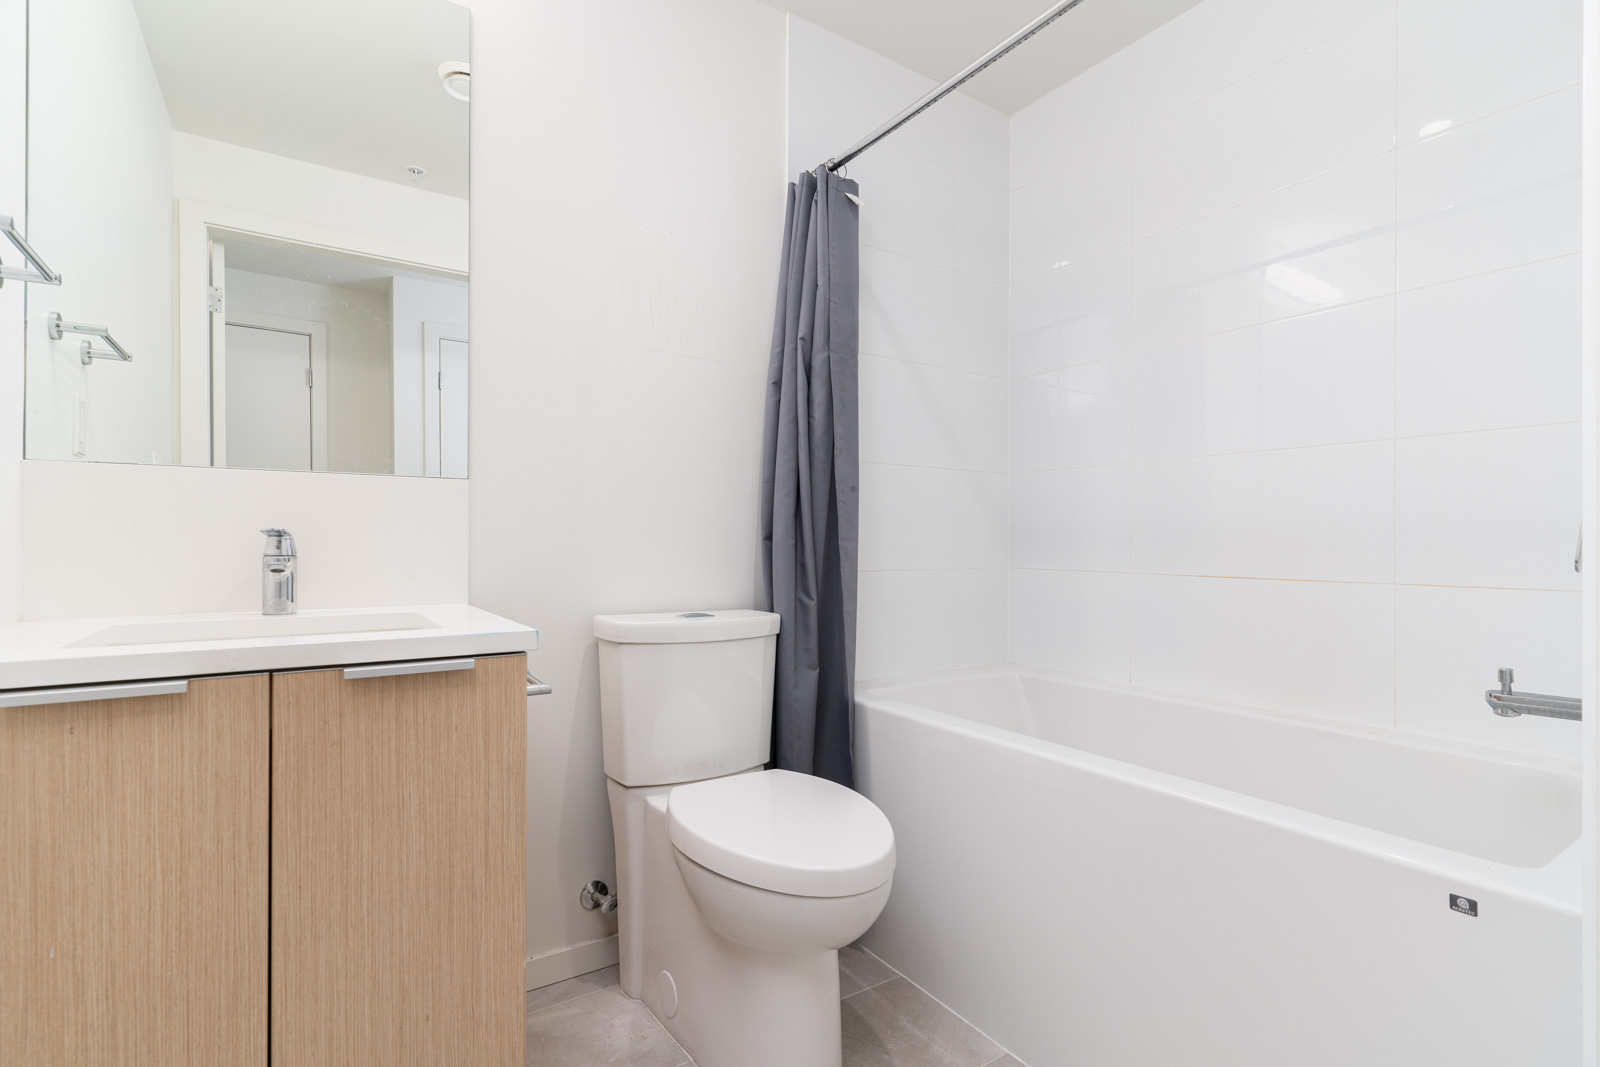 Washroom with bathtub/shower combo, toilet, modern vanity and single sink